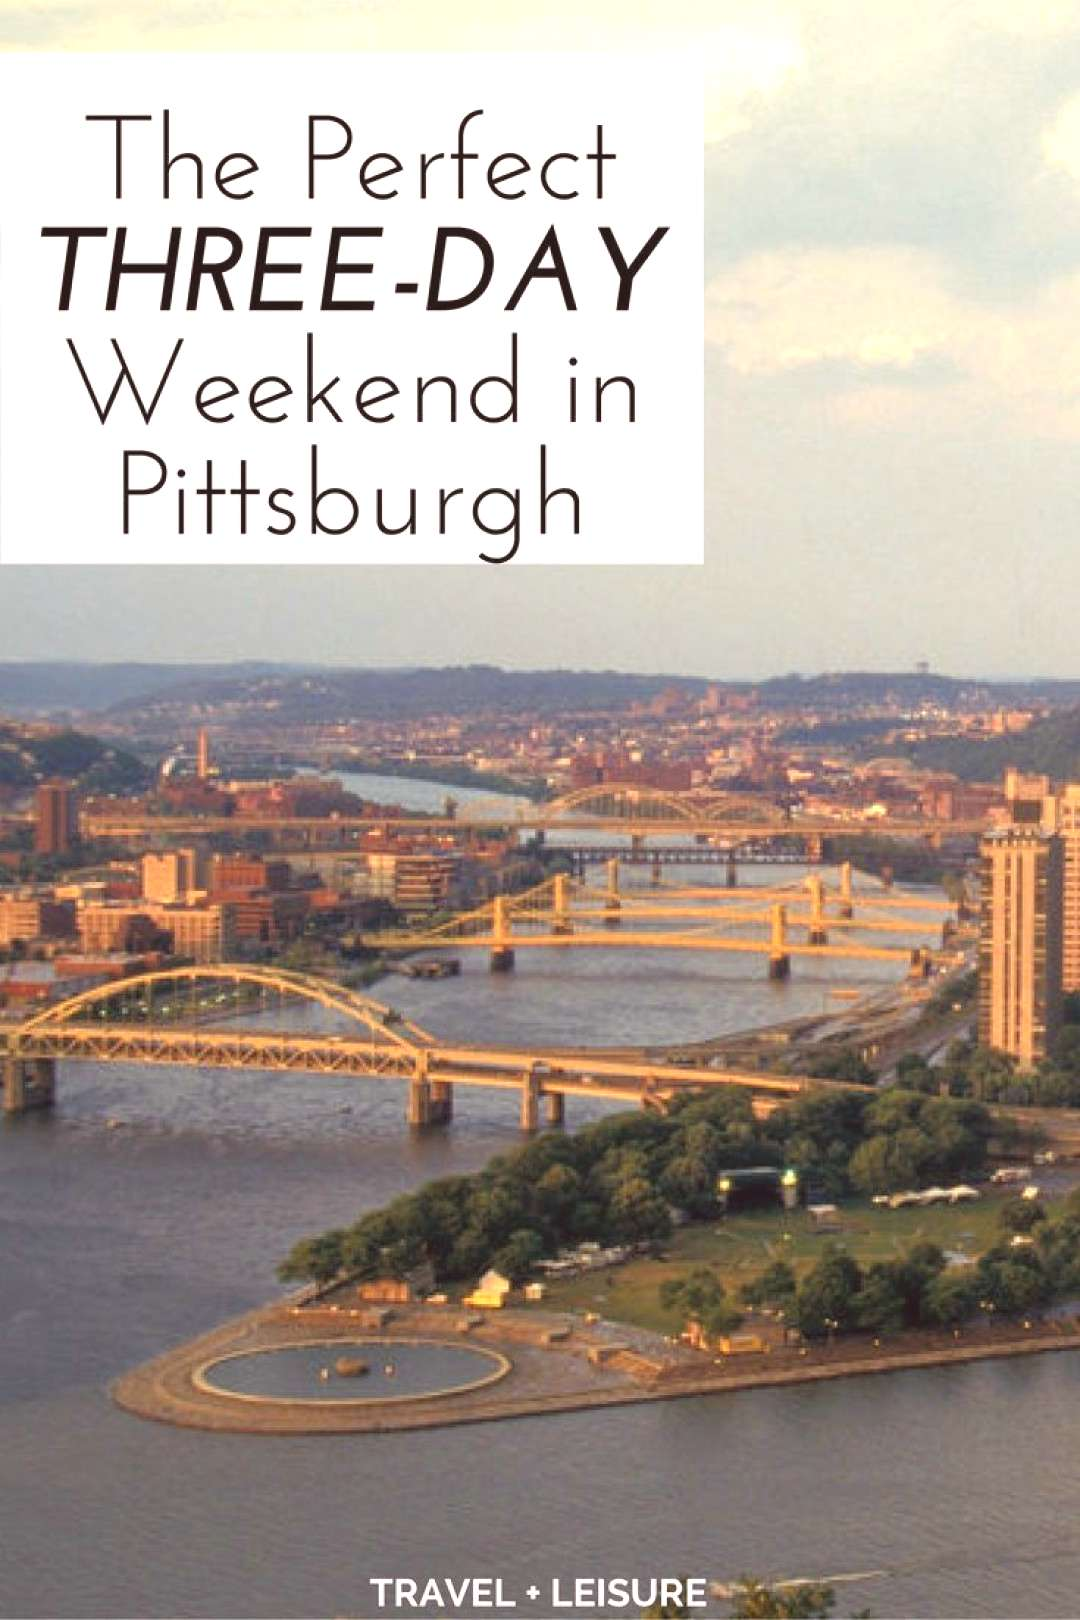 The Perfect Three-Day Weekend in Pittsburgh The Perfect Three-Day Weekend in Pittsburgh,